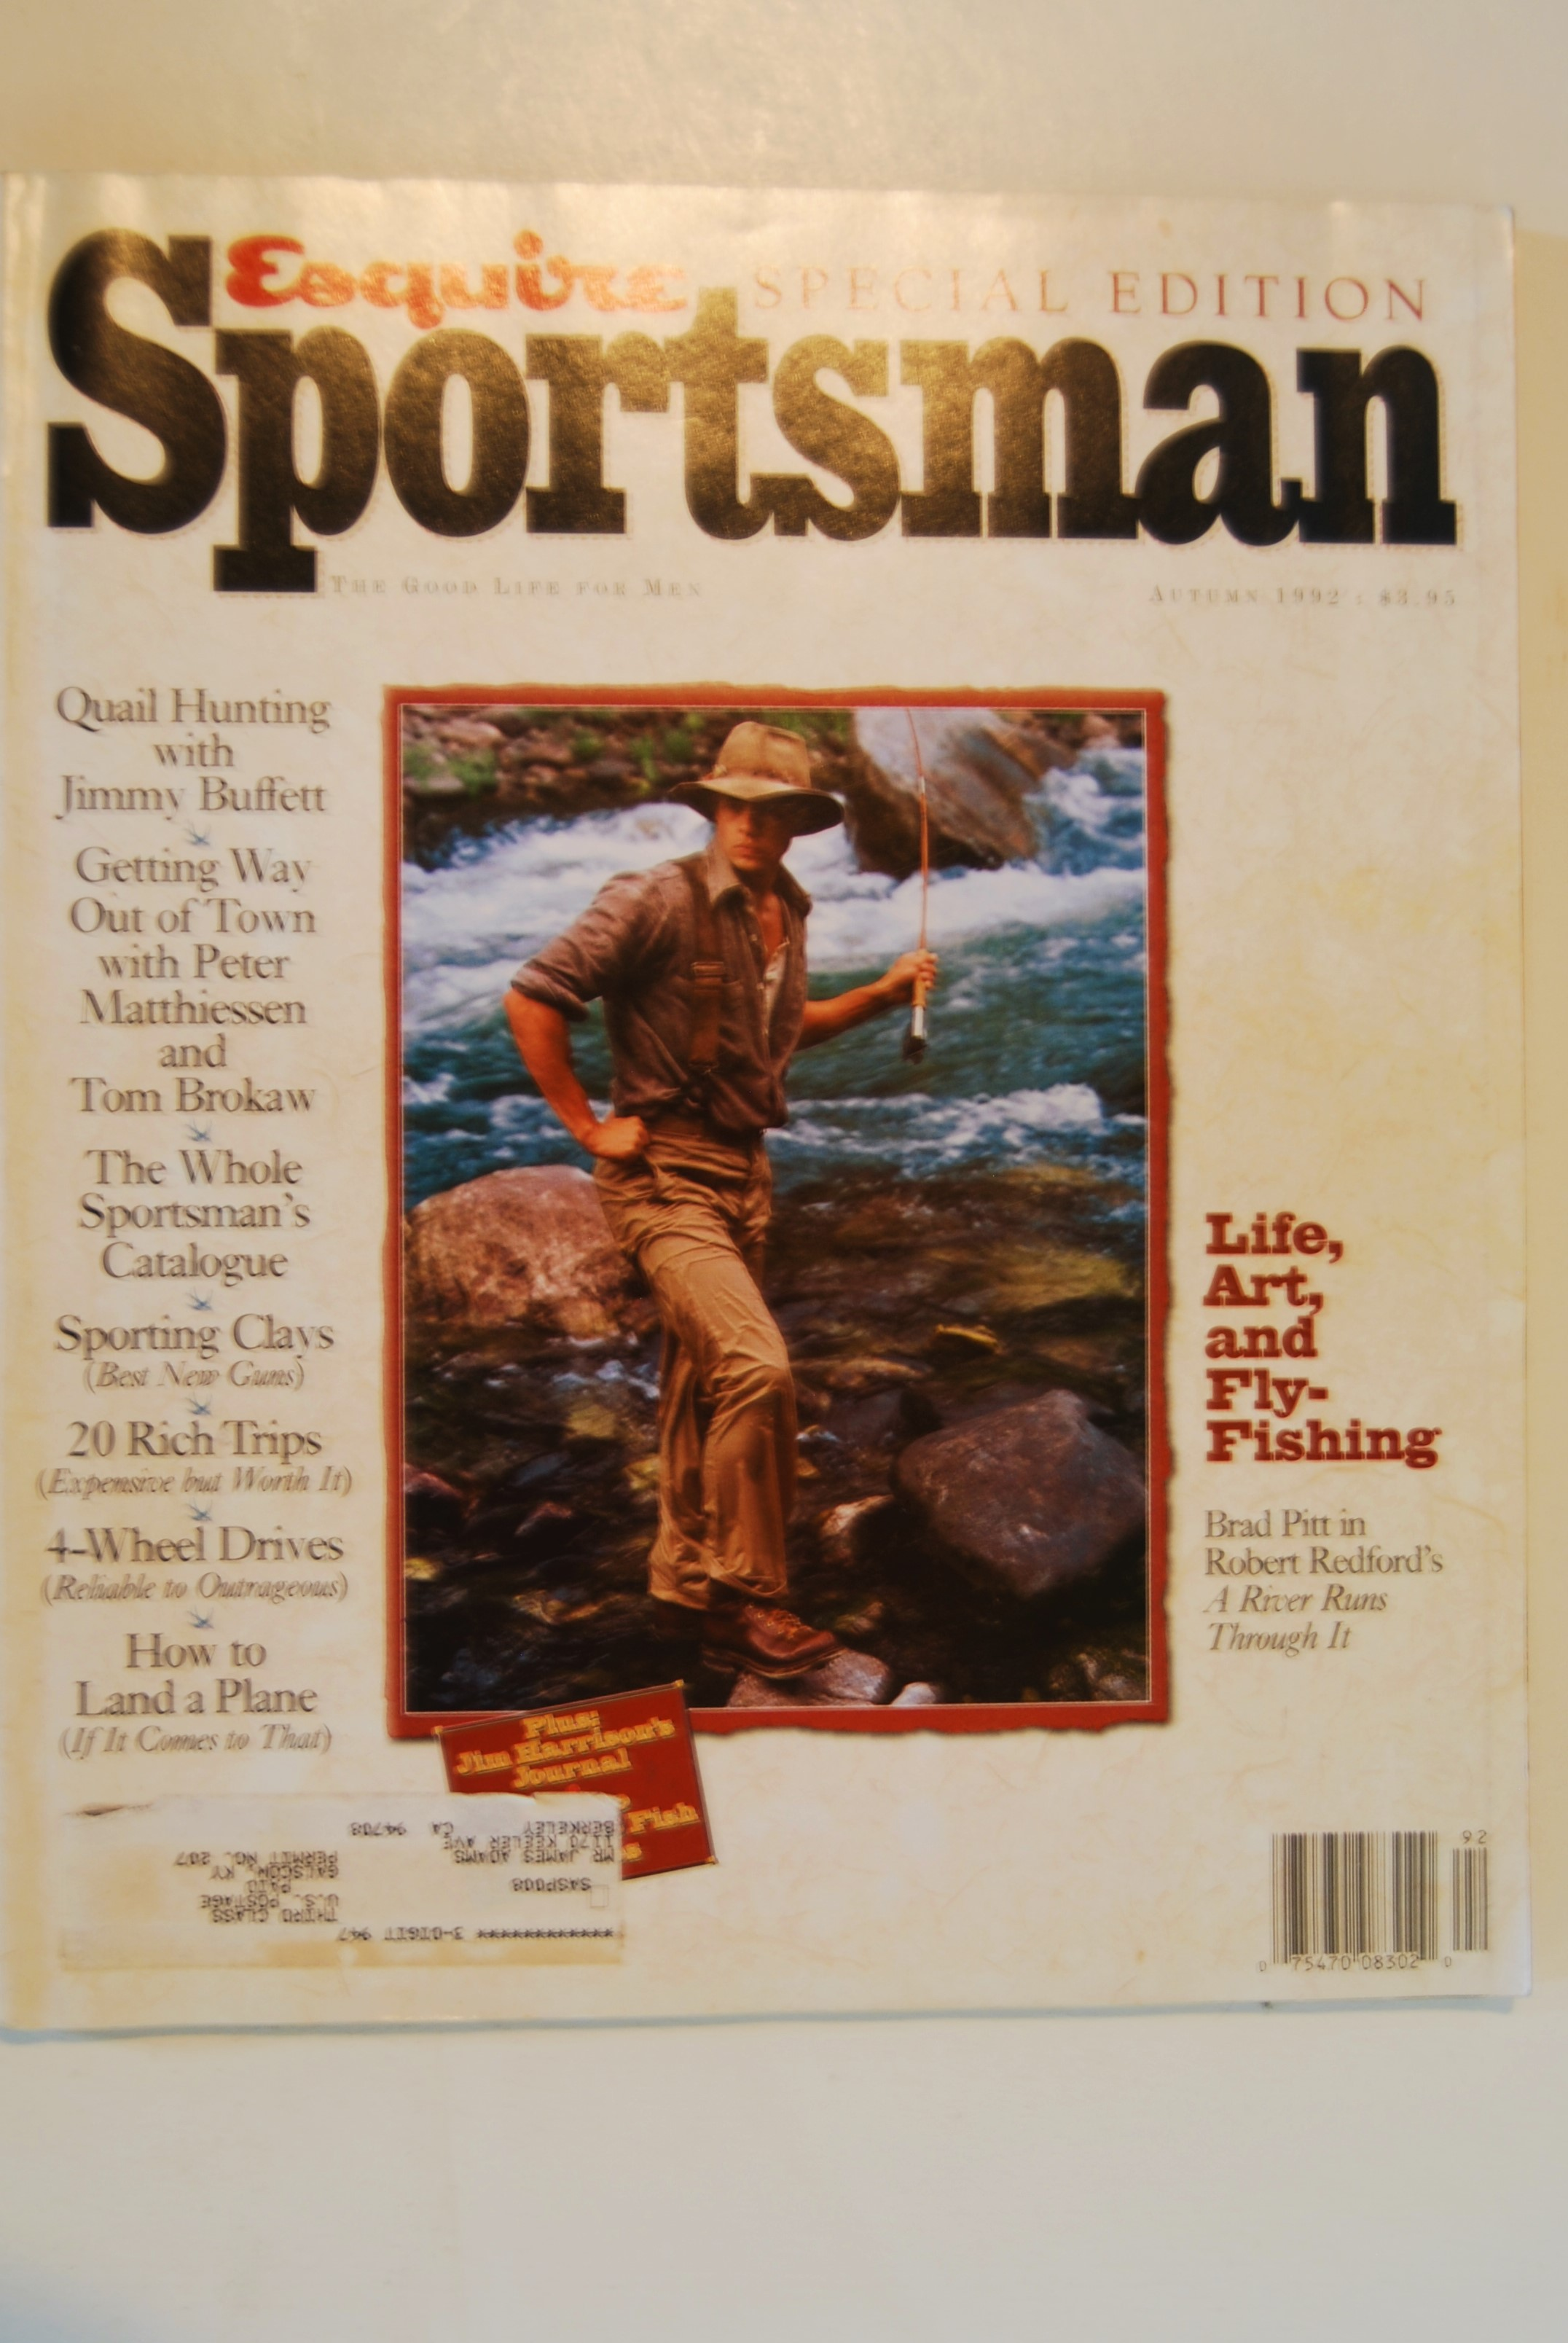 Image for ESQUIRE SPORTSMAN. The Good Life for Men. Special Edition. 4to illus. NY: Hearst Corp. Autumn 1992. Vol. 1 No. 1. 162 p. 1992